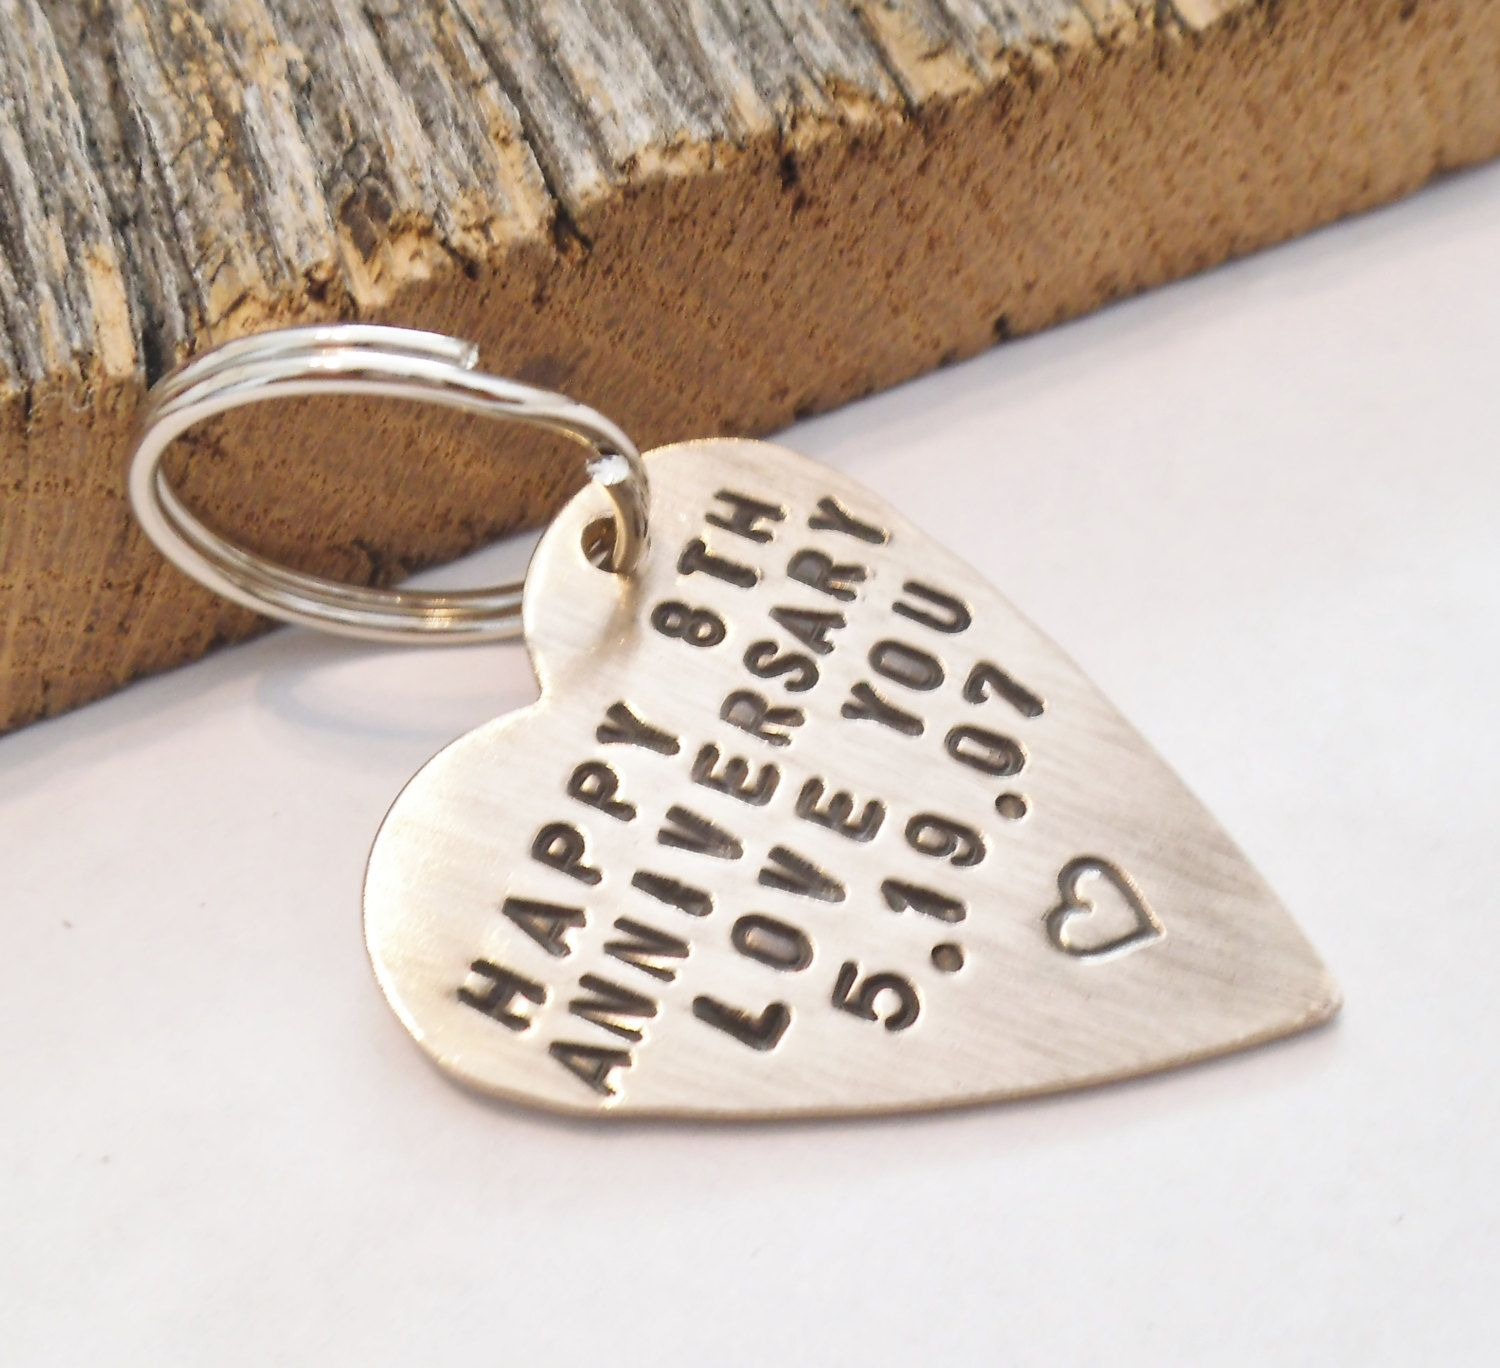 8th Wedding Anniversary Gift For Her: Anniversary Keychain For Wife 8 Year Anniversary For